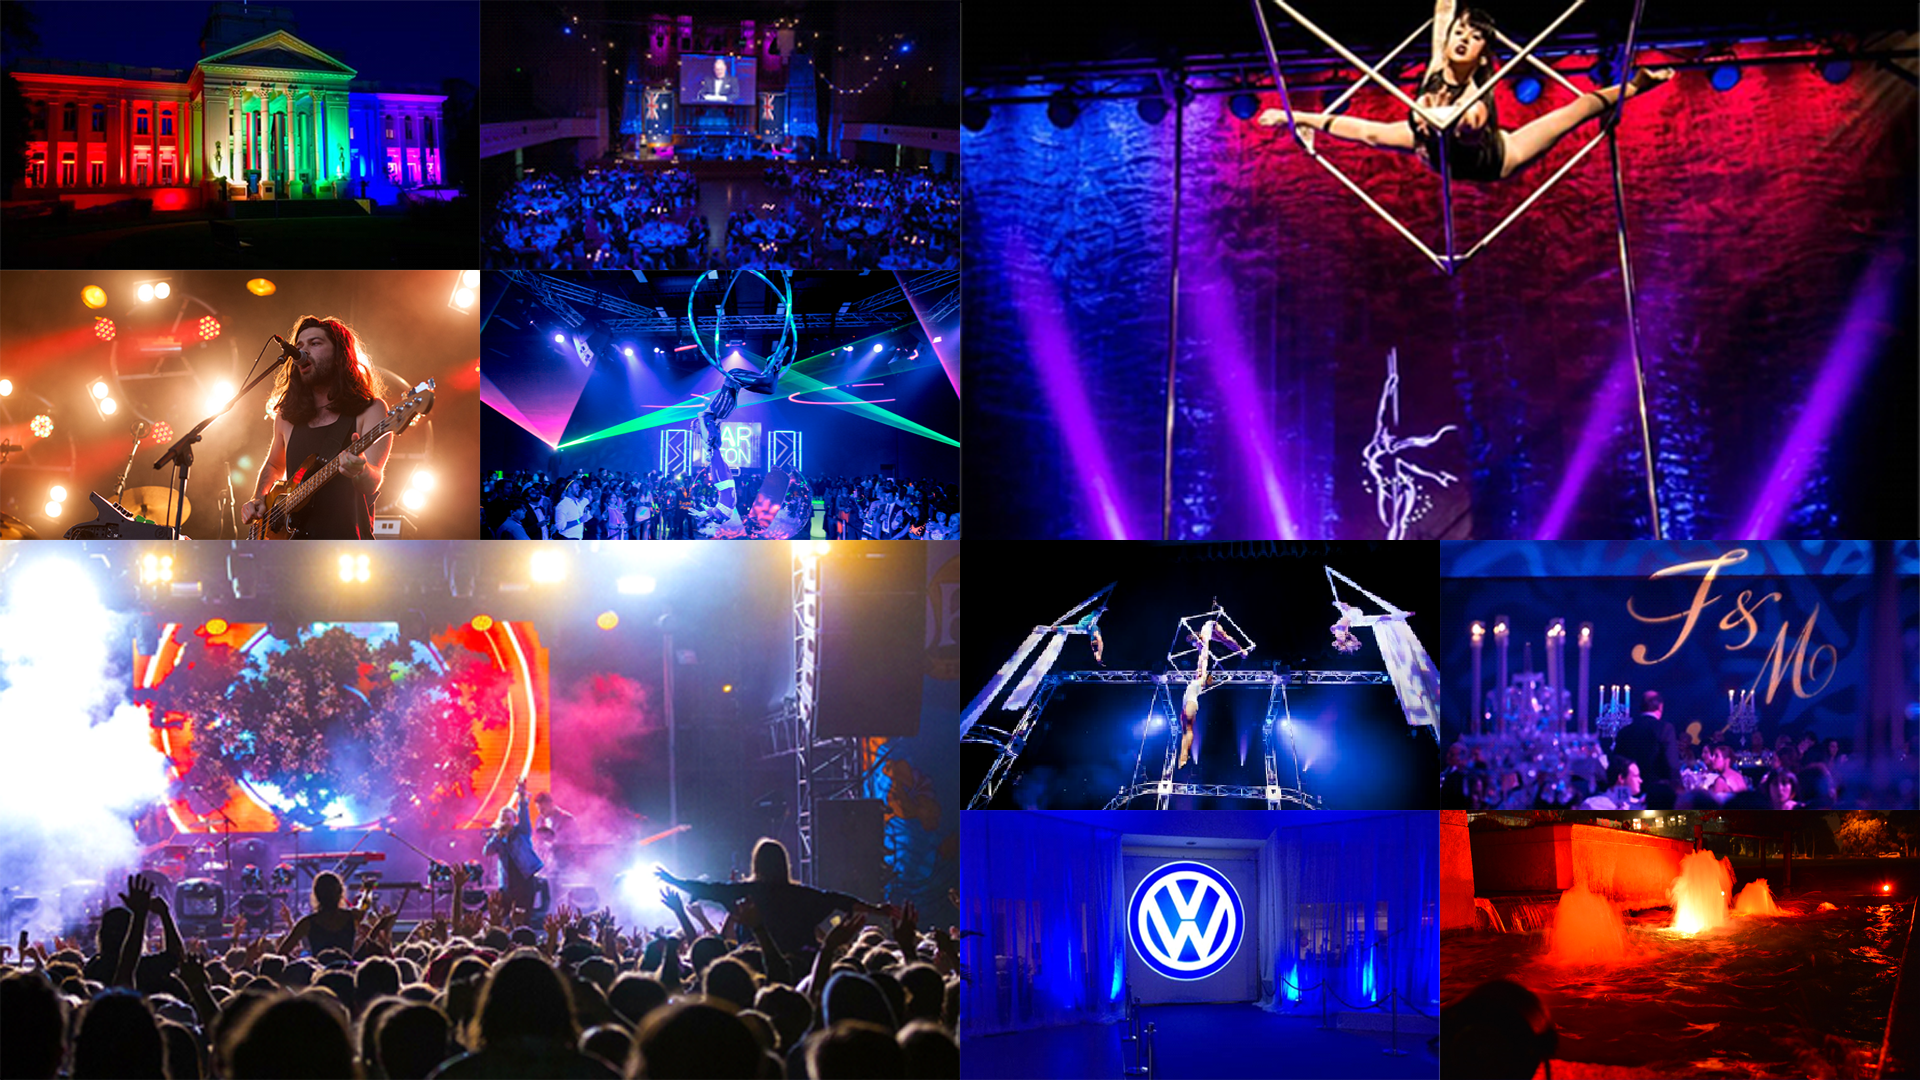 Our business combines high quality equipment, personalised service, and a wealth of experience to meet your event requirements. Whether it be rental of a single piece of equipment, or full design and implementation of a large show, SMOKESCREEN ILLUMINATION is - focused on meeting our customers requirements.